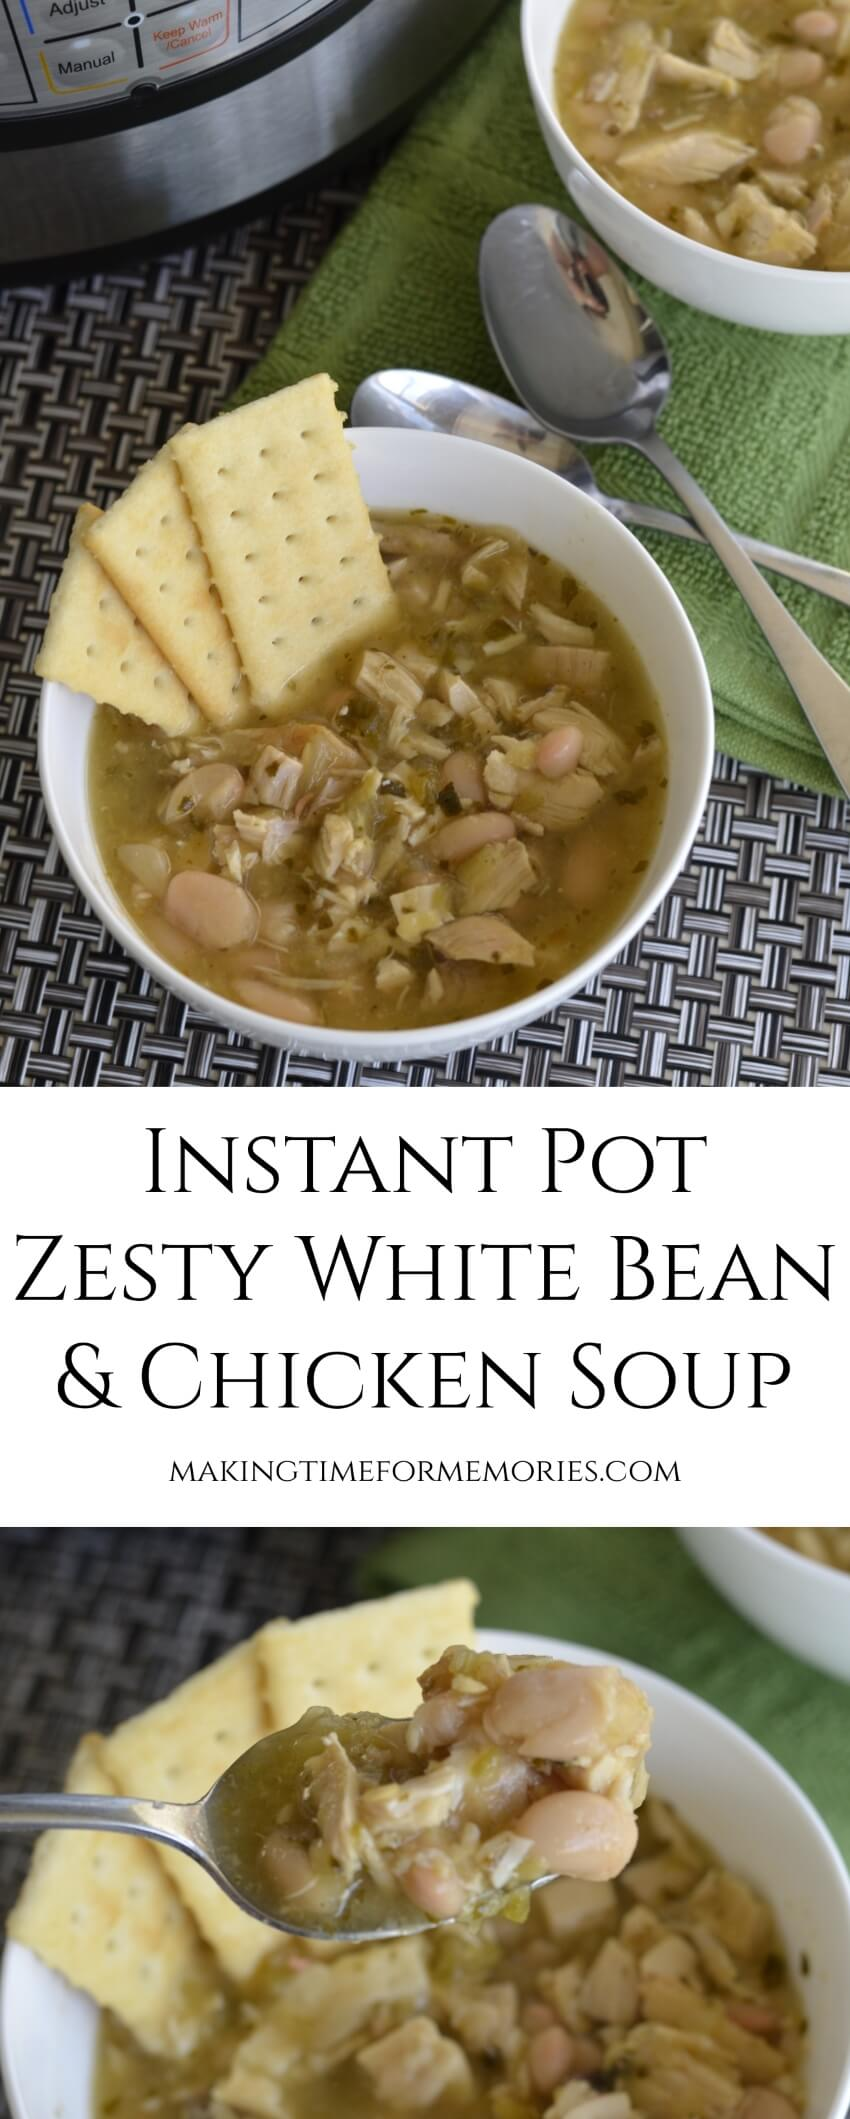 Instant Pot Zesty White Bean & Chicken Soup ~ #InstantPot #recipe #soup